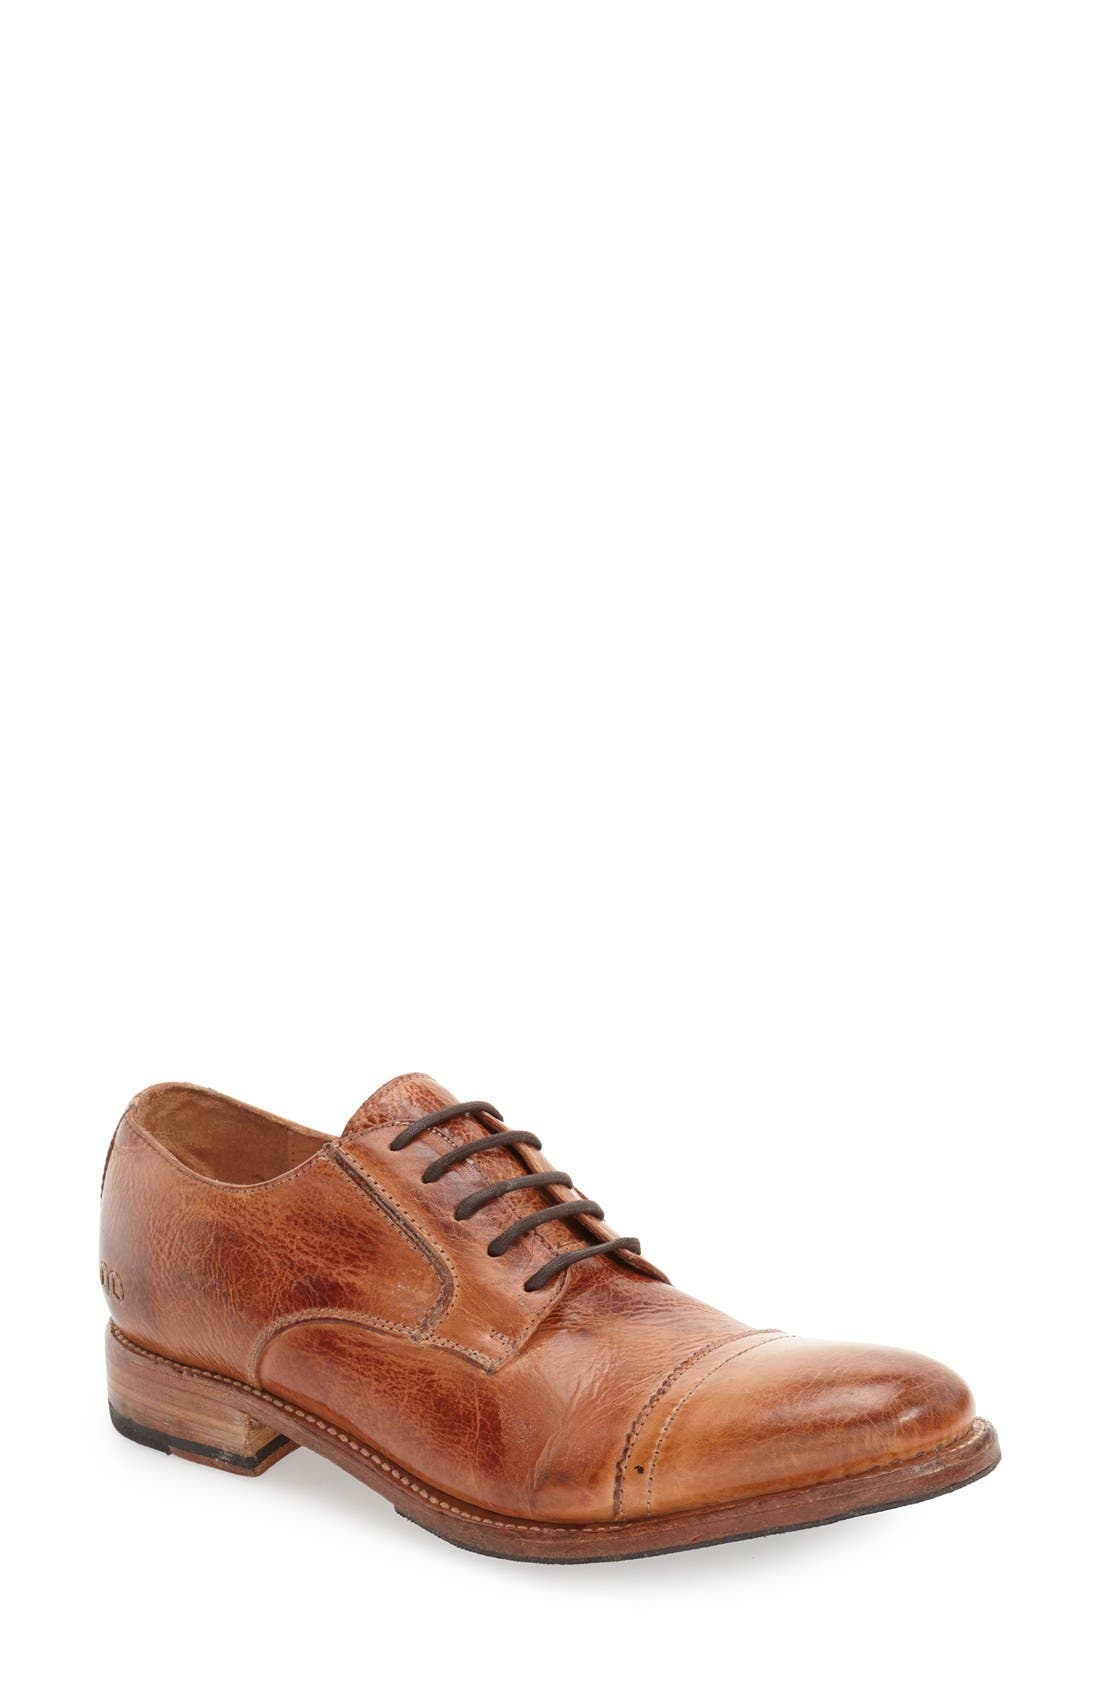 'Diorite' Cap Toe Derby,                         Main,                         color, Cognac Leather